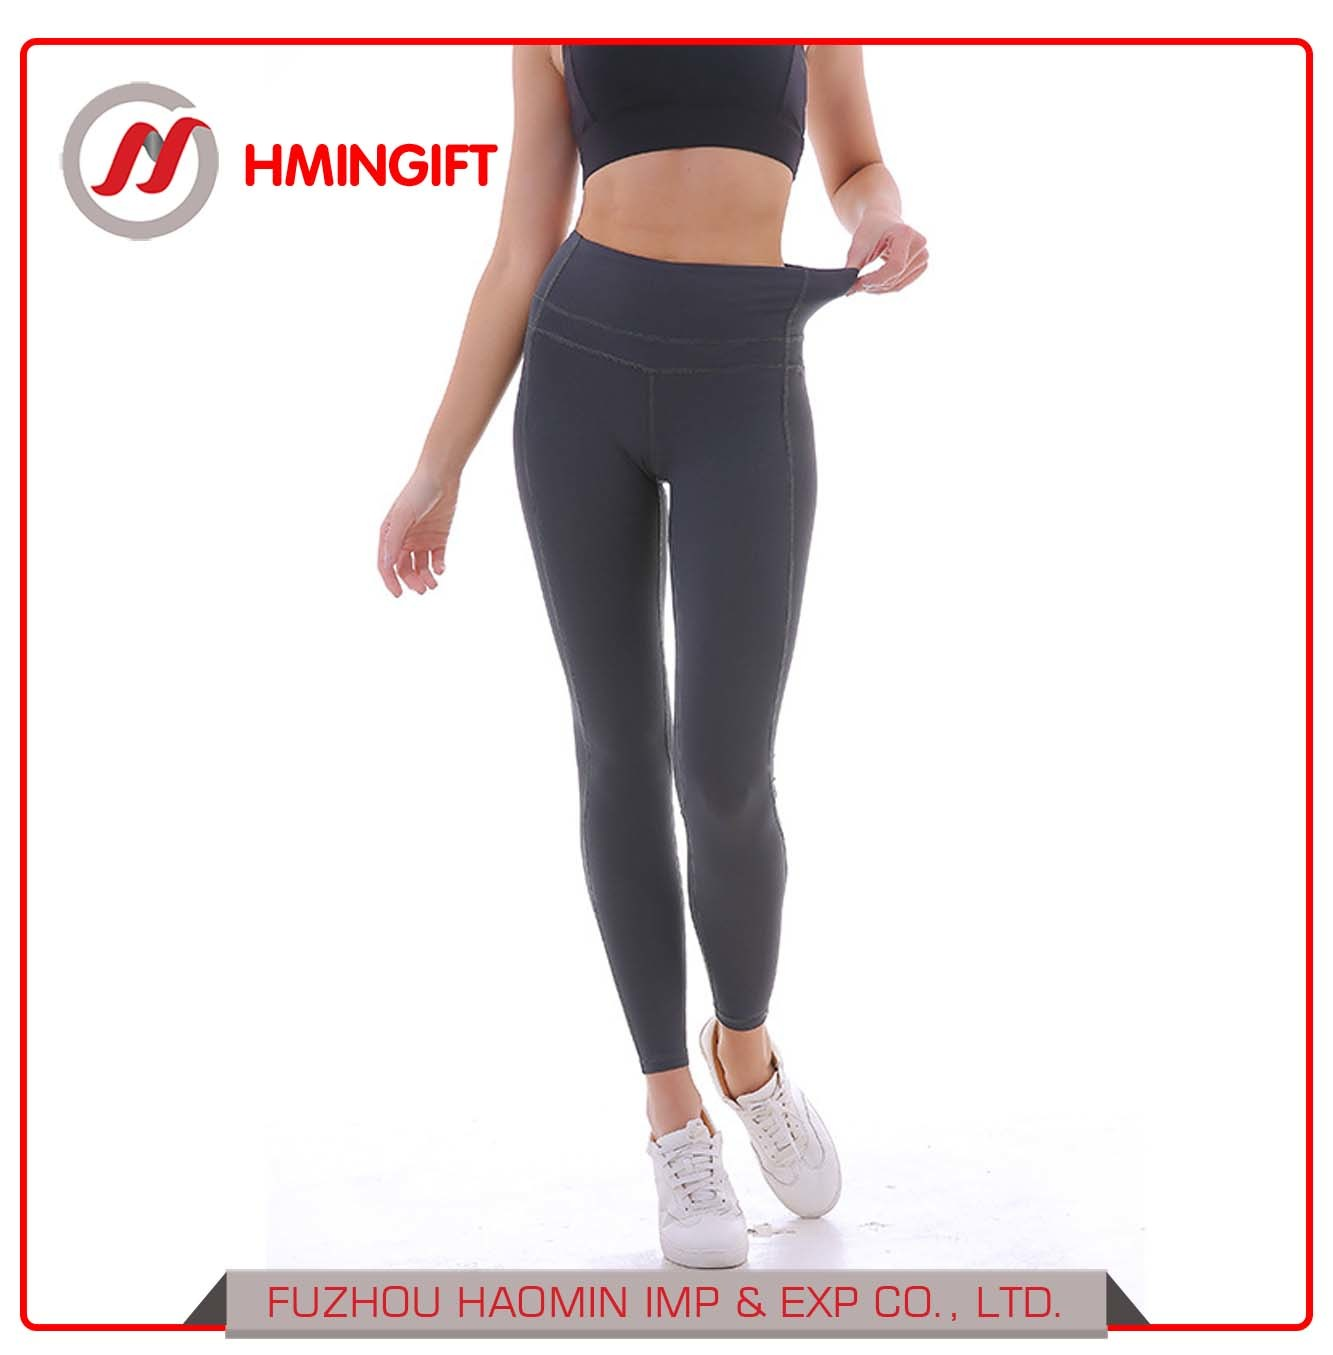 durable service 2019 best sell where to buy [Hot Item] Women′s Non See-Through Fitness Compression Yoga Pants Tight Gym  Wear Custom Printed for Women Legging